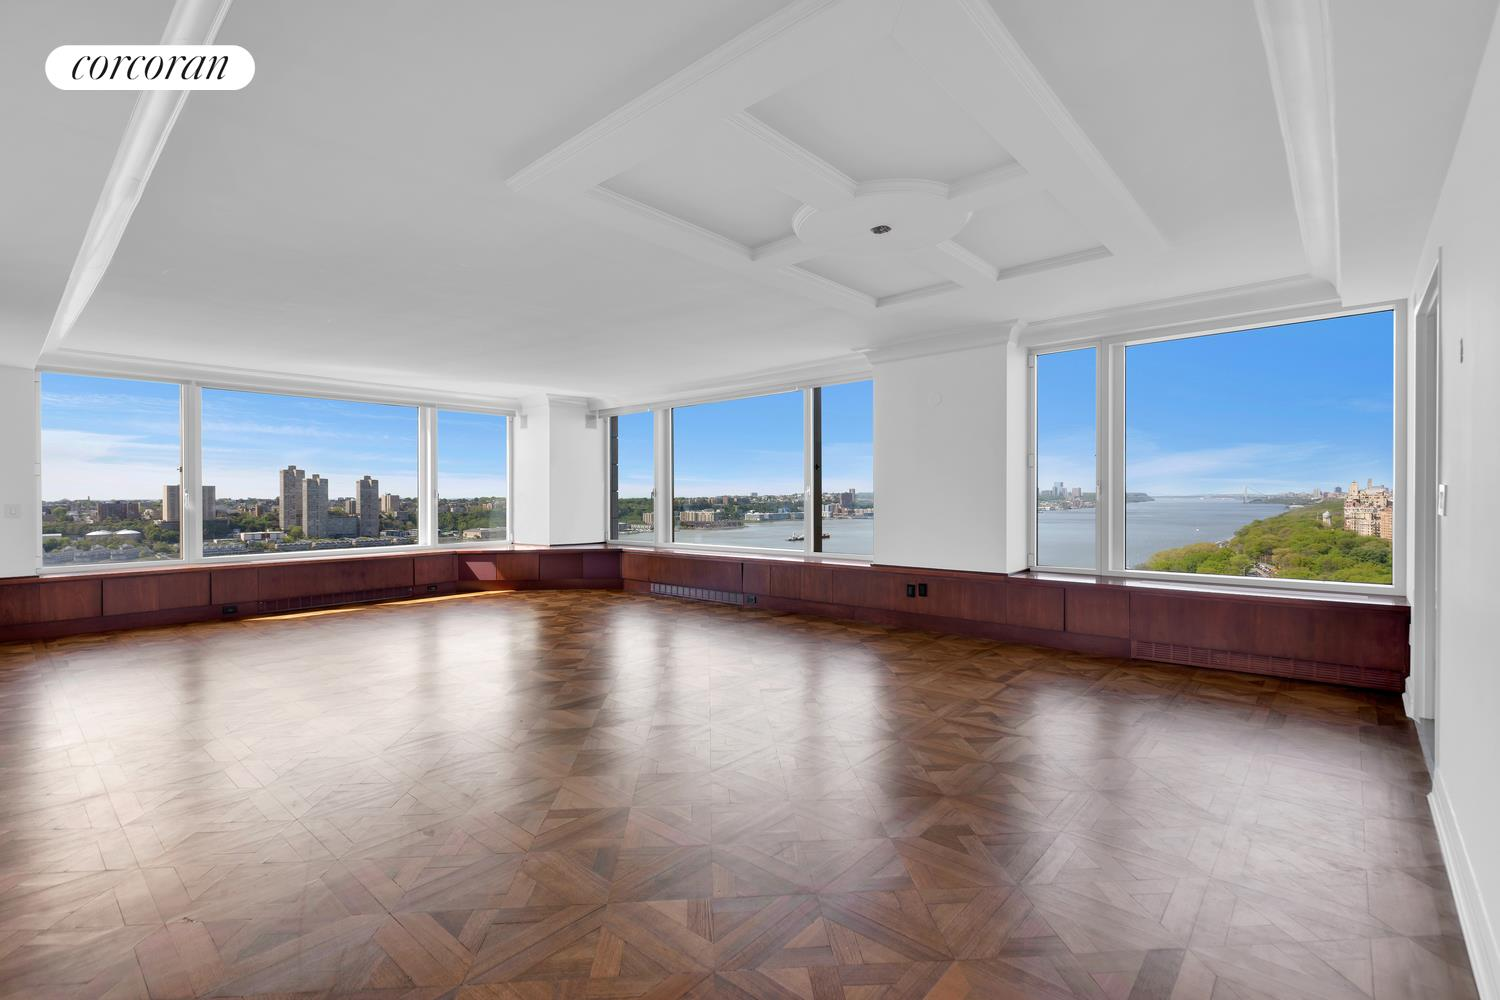 Located along Riverside Boulevard, one of Manhattan's premier residential retreats, in one of the Boulevard's full-service luxury buildings, this high-floor corner four-bedroom, four-and-a-half-bathroom condominium boasts breathtaking open views from every room! Wide open Hudson River, Riverside Park and city skyline views as far as the eye can see provides one of the most desirable vantage points in the city. An aerial view spanning the length of Riverside Park all the way to the George Washington Bridge offers a beautiful seasonal perspective. Brilliant sunsets are guaranteed every night!  The expansive 4,500 SF layout offers grand proportions and is sun-filled throughout the day with 3 open exposures from high atop the 23rd floor. This open loft-like floor plan presents a massive formal entertaining expanse with corner living room, library, eat-in kitchen and a corner formal dining room or den / media room featuring over 100 feet of stunning River and Park views.  This special home allows for flexibility and offers a private residence wing with four bedrooms each with en-suite bathrooms and very generous custom storage including multiple walk-ins. All 4 bedrooms face east boasting wide open city and skyline views and the primary corner suite also boasts River views.   The gorgeous open chef's kitchen faces the Park and the River and is as functional as it is sleek. A huge central island creates seating for casual dining and gathering. Top of the line stainless appliances include Sub Zero refrigerator, Wolf 6-burner gas range oven with Miele hood, Wolf convection wall oven, Miele dishwasher and Viking wine refrigerator. Additional luxuries include central AC and heating, laundry and a sublime master bath with double vanity, spa shower and deep-soaking tub overlooking the River! Extraordinary features come together with this fabulous Riverside home coupled with the luxury lifestyle amenities that come with owning a home at the 240 Riverside Boulevard.